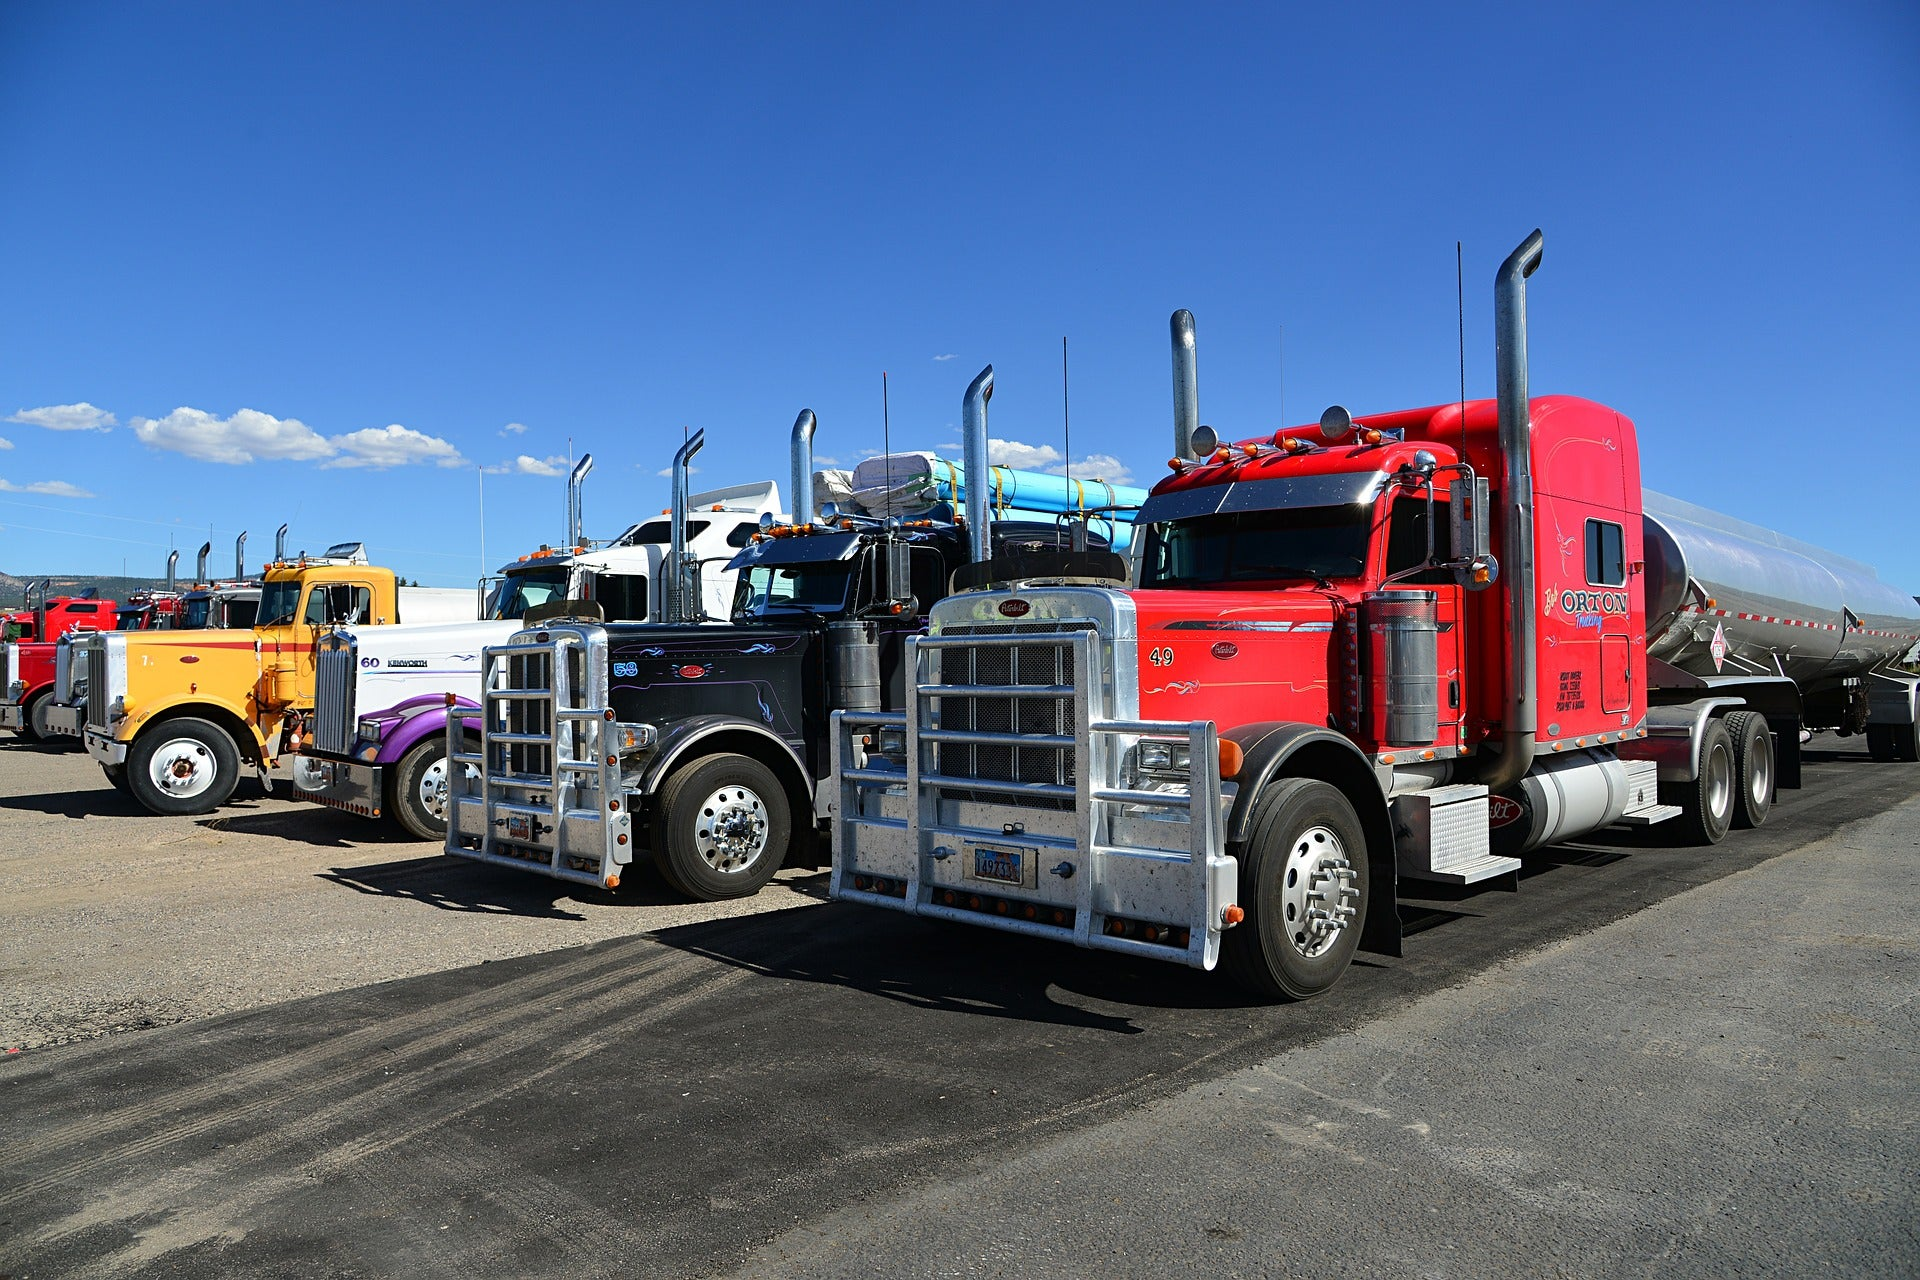 'Glider trucks' are pollution machines, but they might roll past EPA regulations